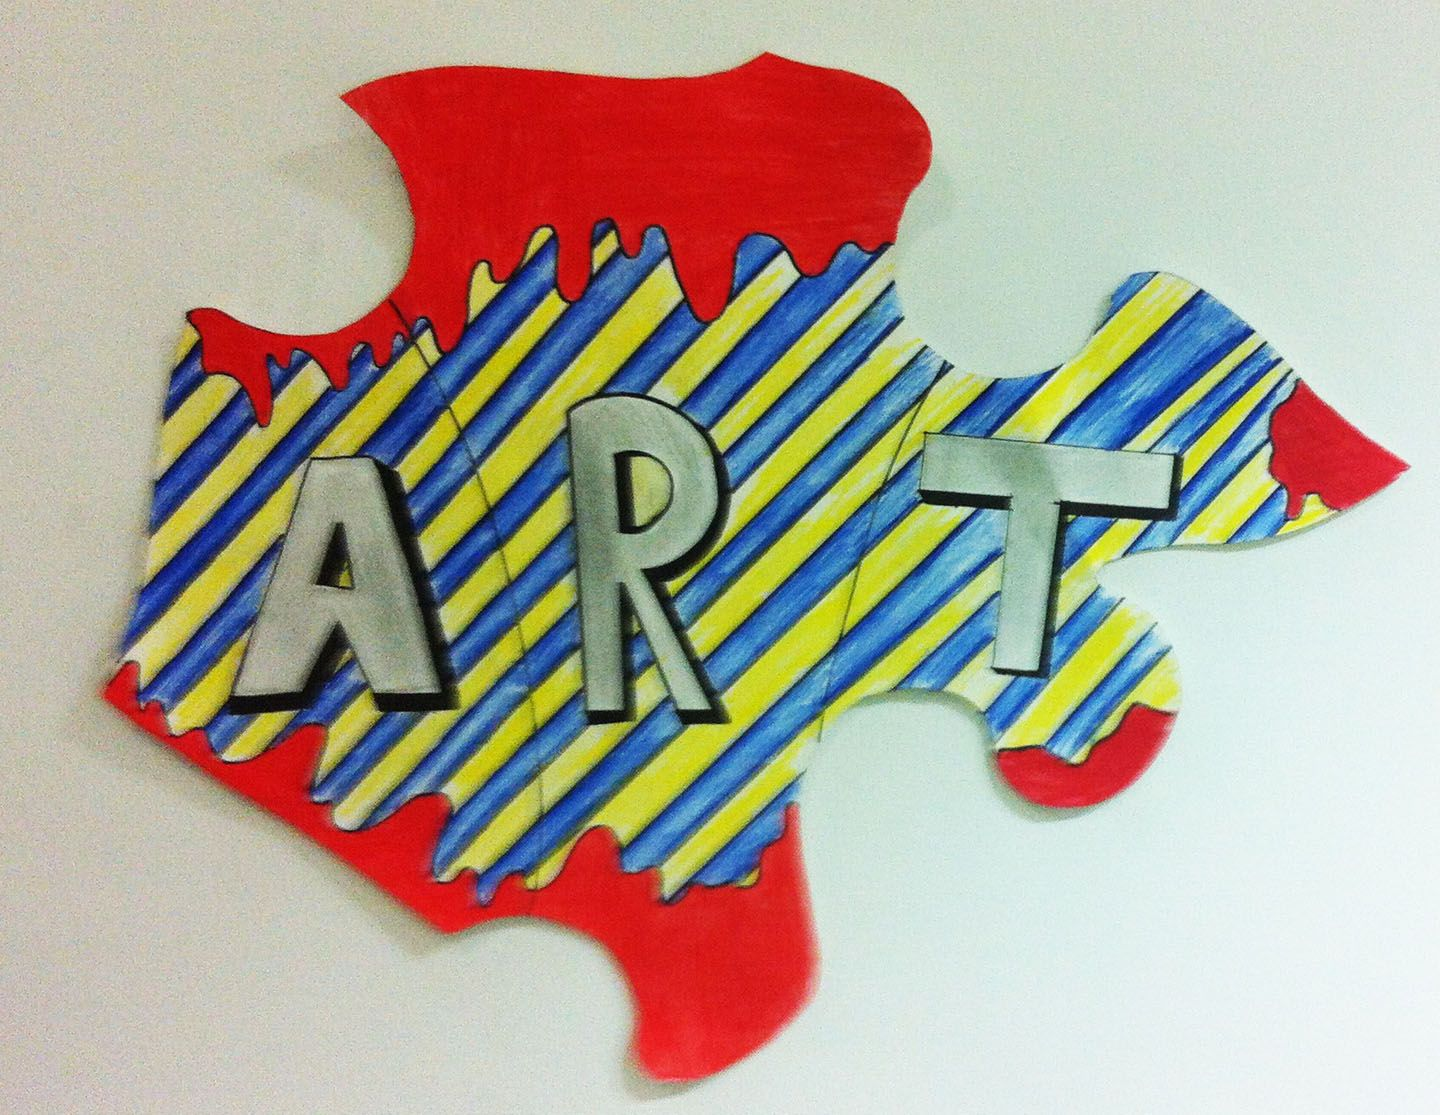 Students were to make one letter of the work A.R.T. on the